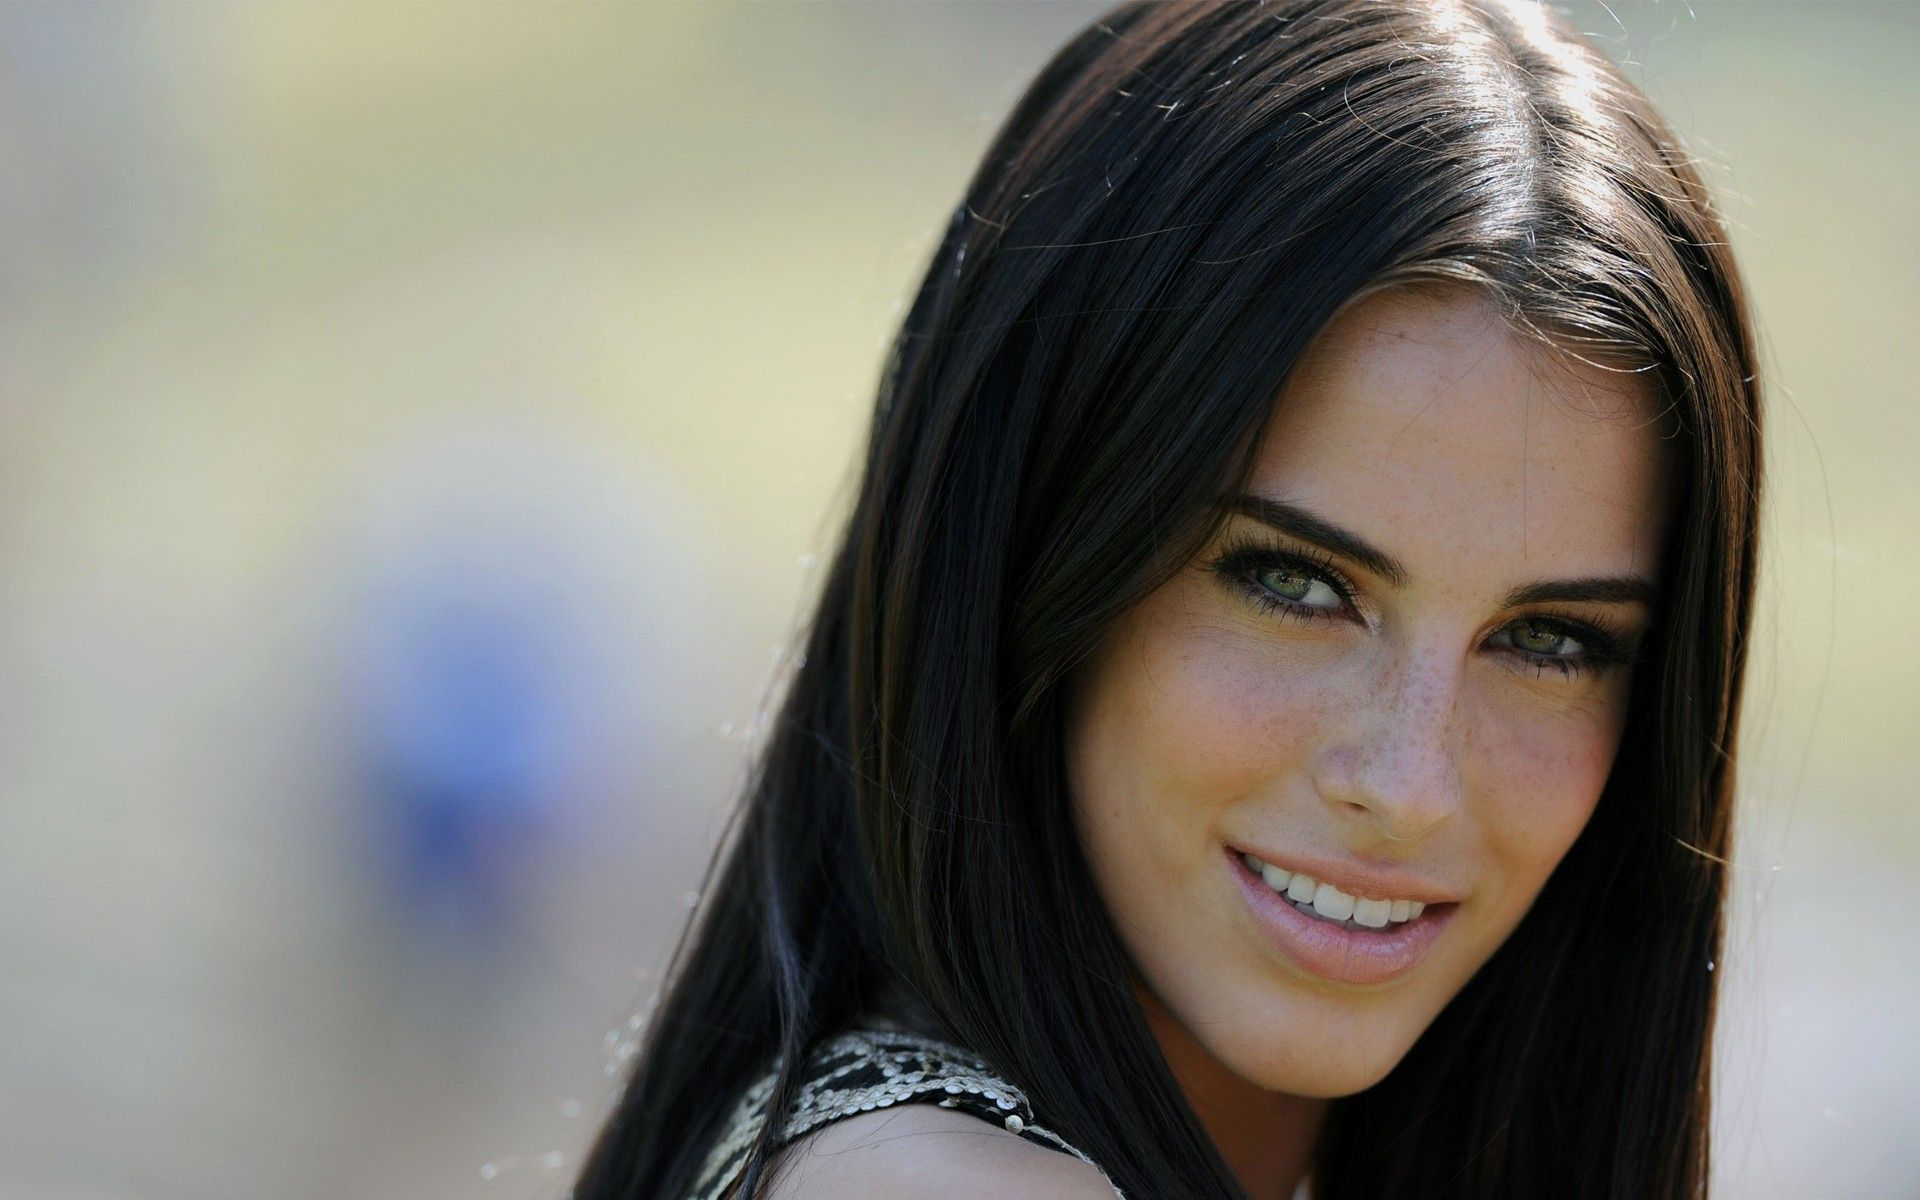 Women Actress Freckles Green Eyes Goddess Jessica Lowndes